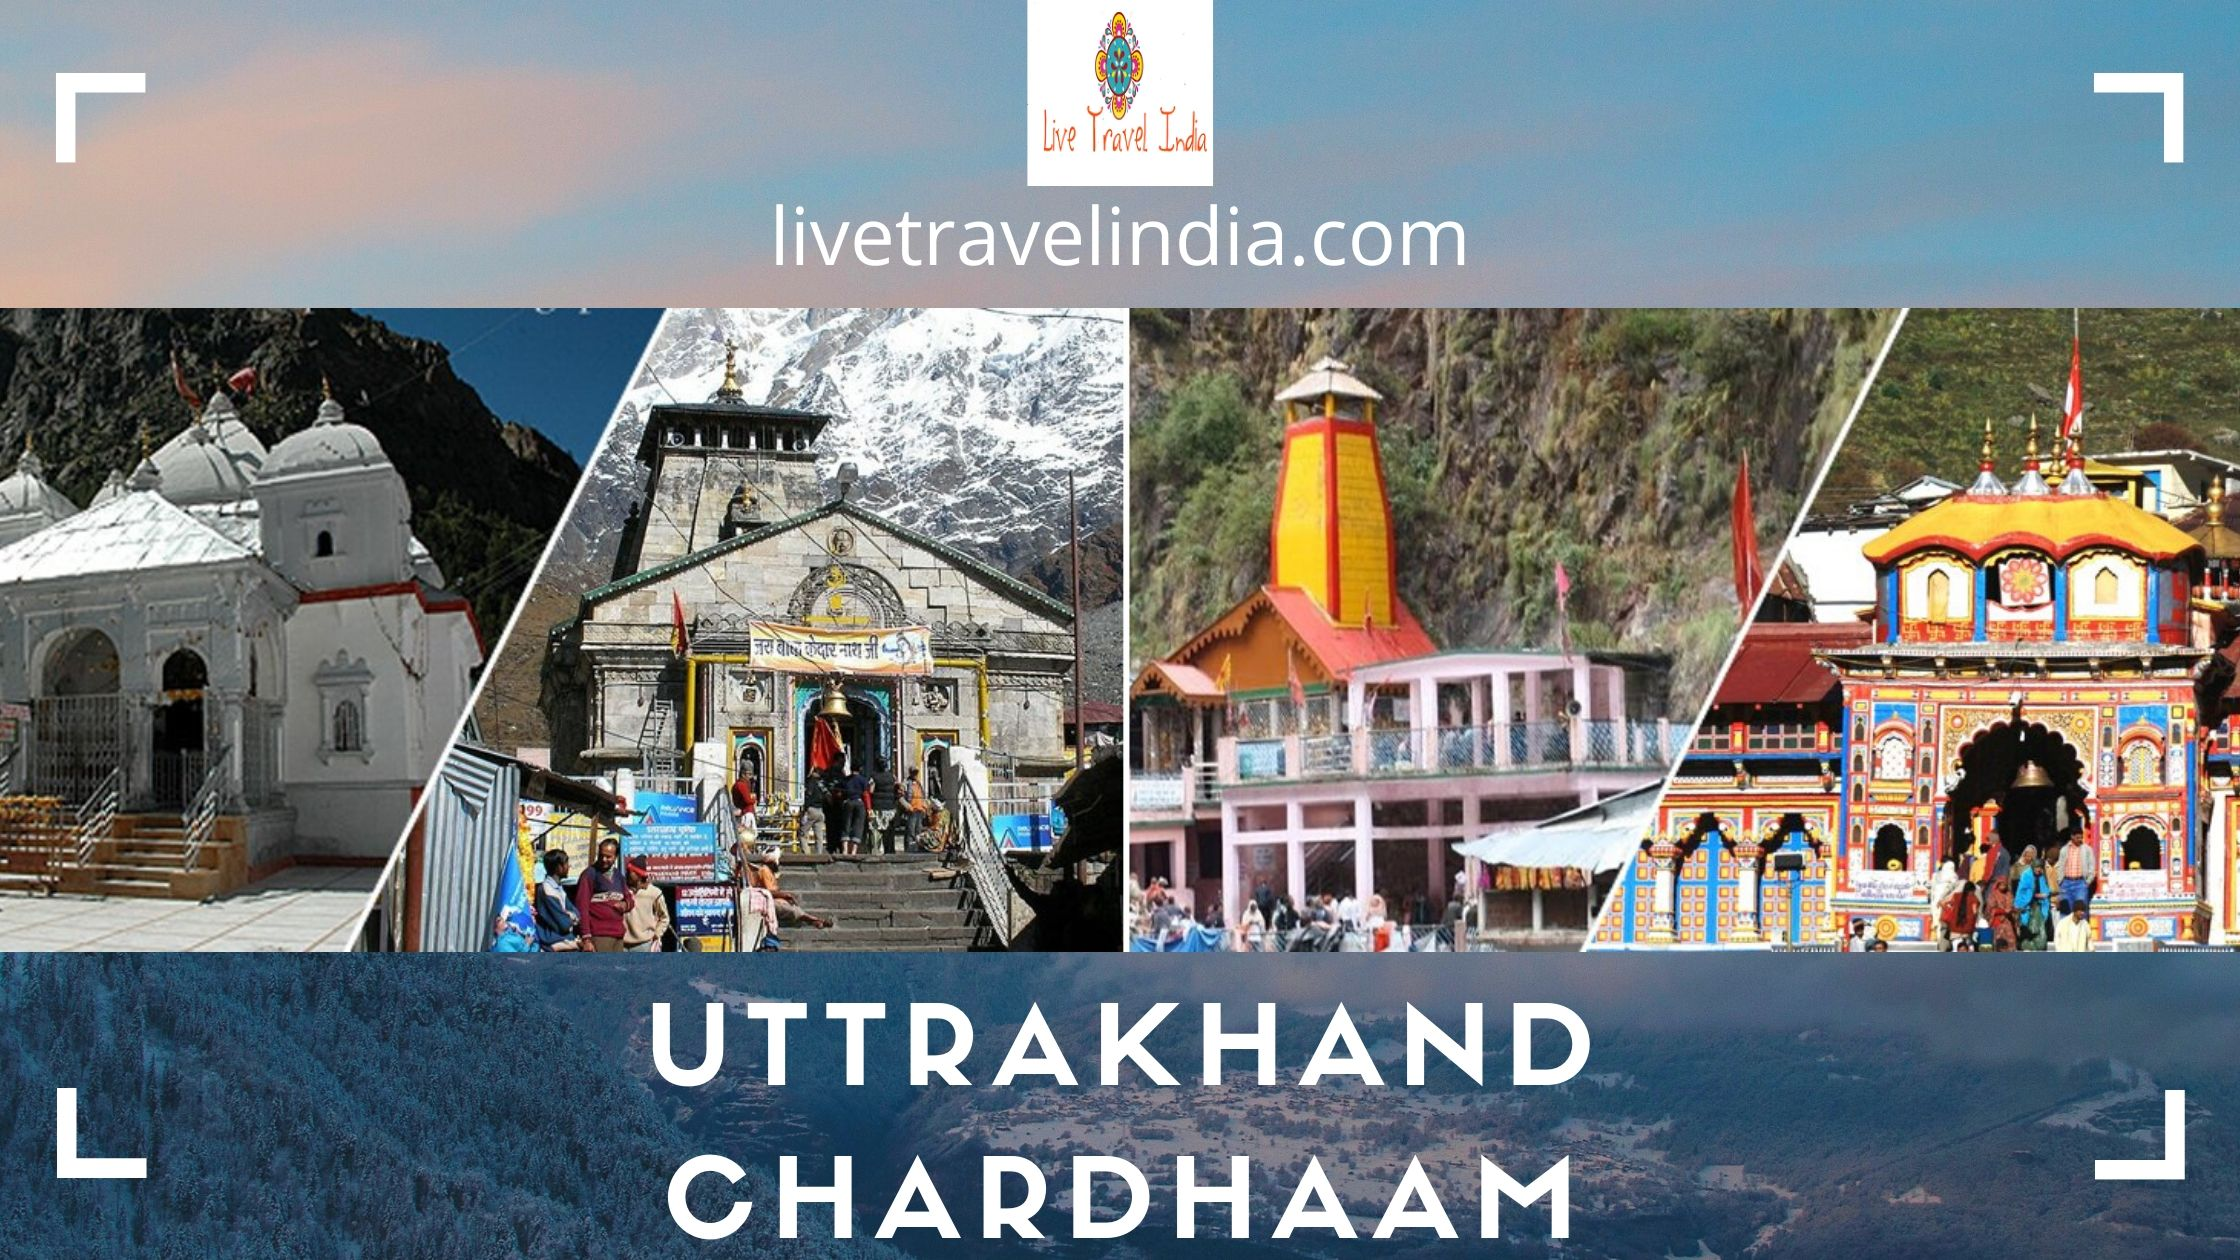 Uttrakhand Chardham Yatra resumed from today - Check all the details here